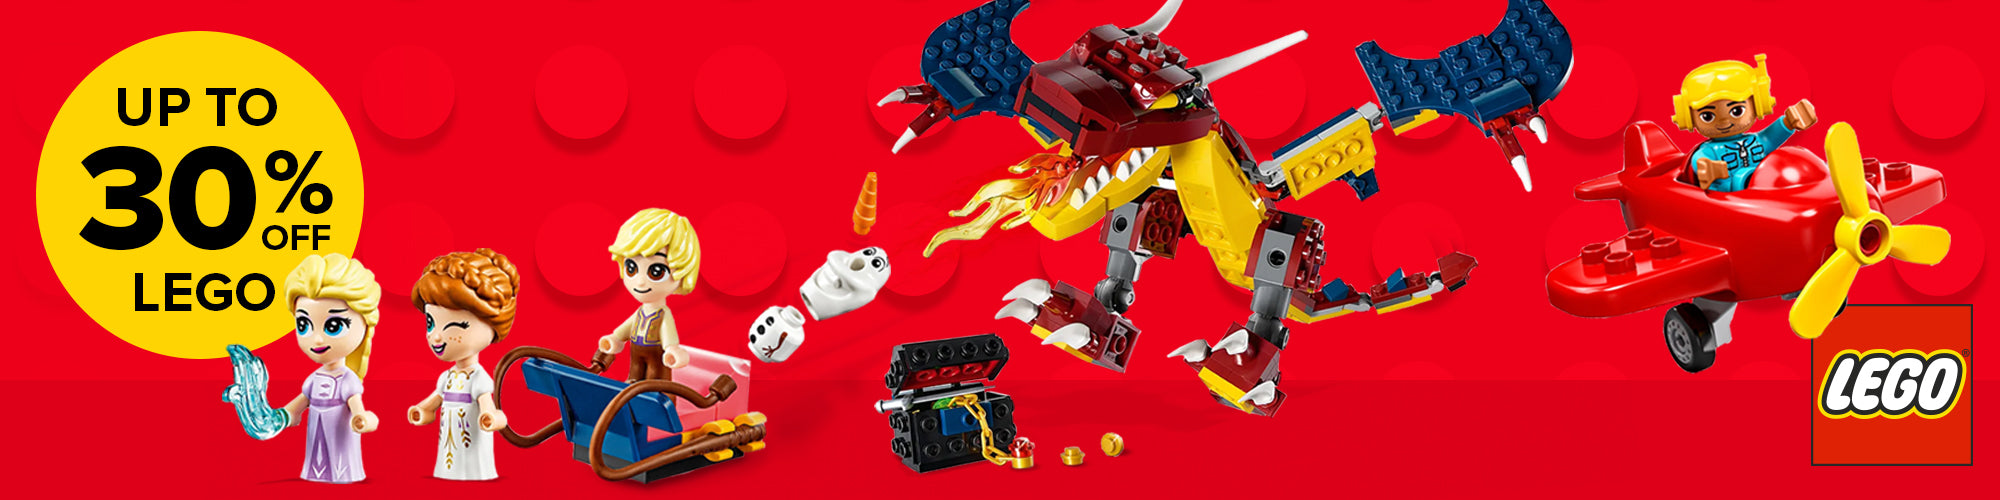 Lego up to 30% off